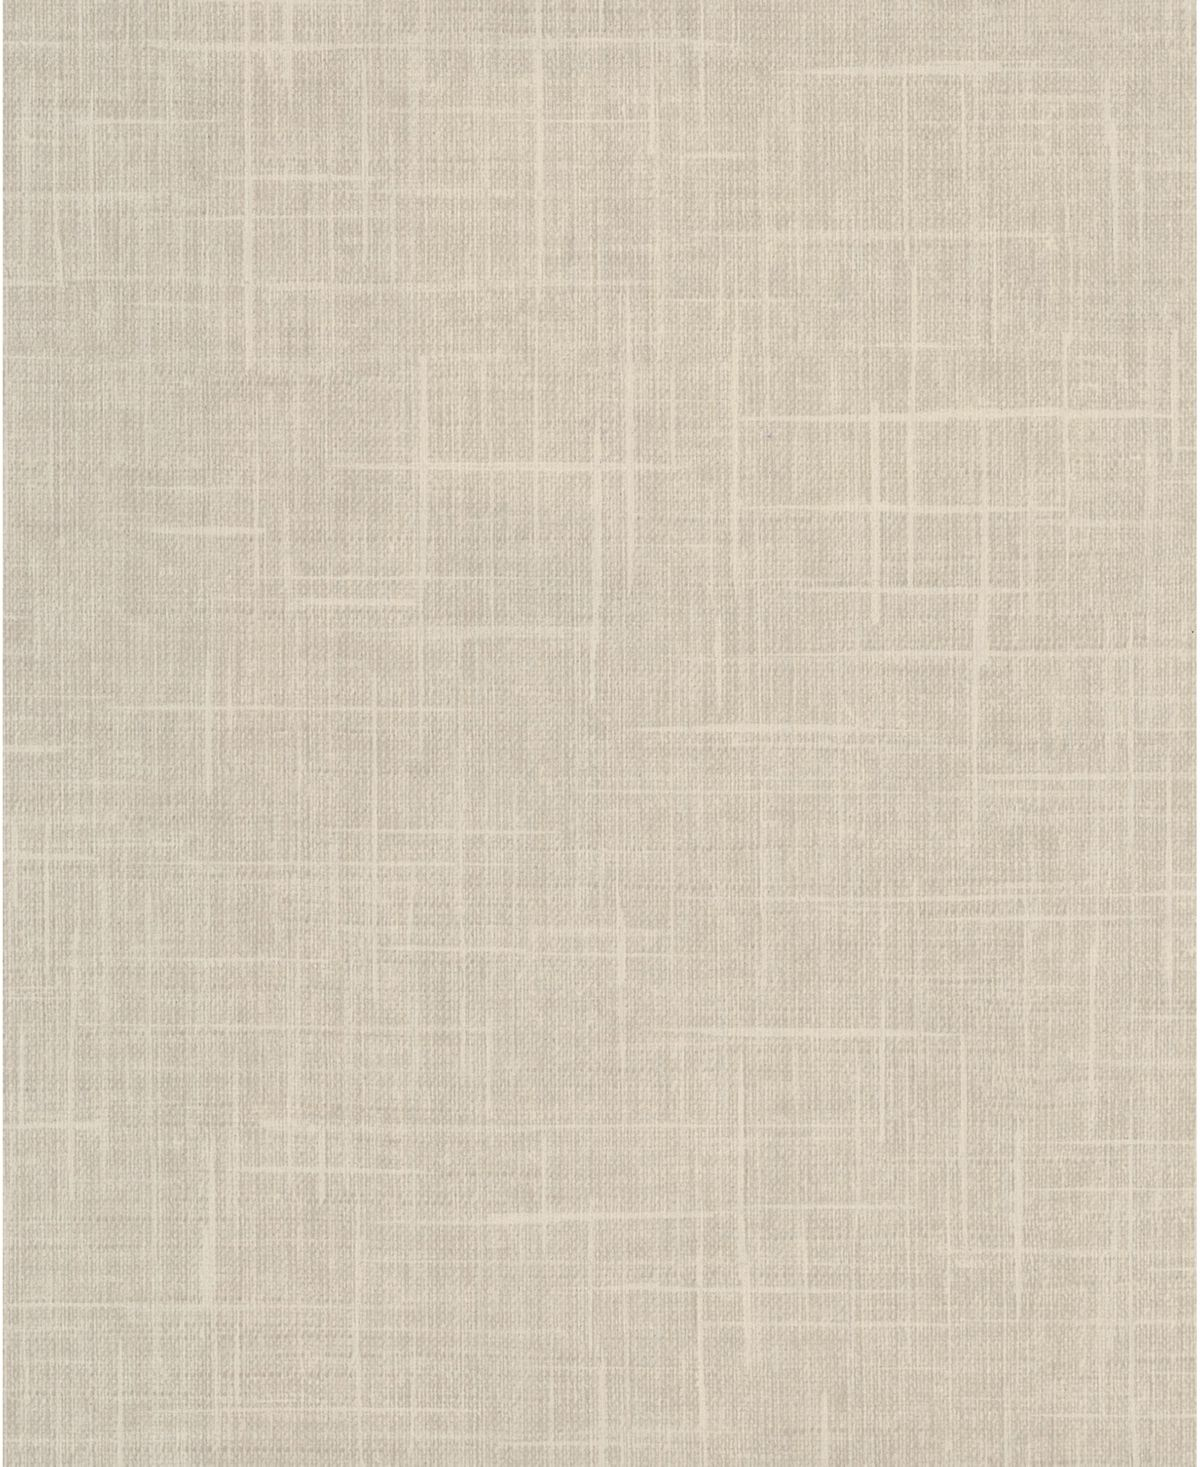 With a rich cream hue, this linen inspired wallpaper has a versatile look. Its textured design and tightly woven pattern add to its authentic look.